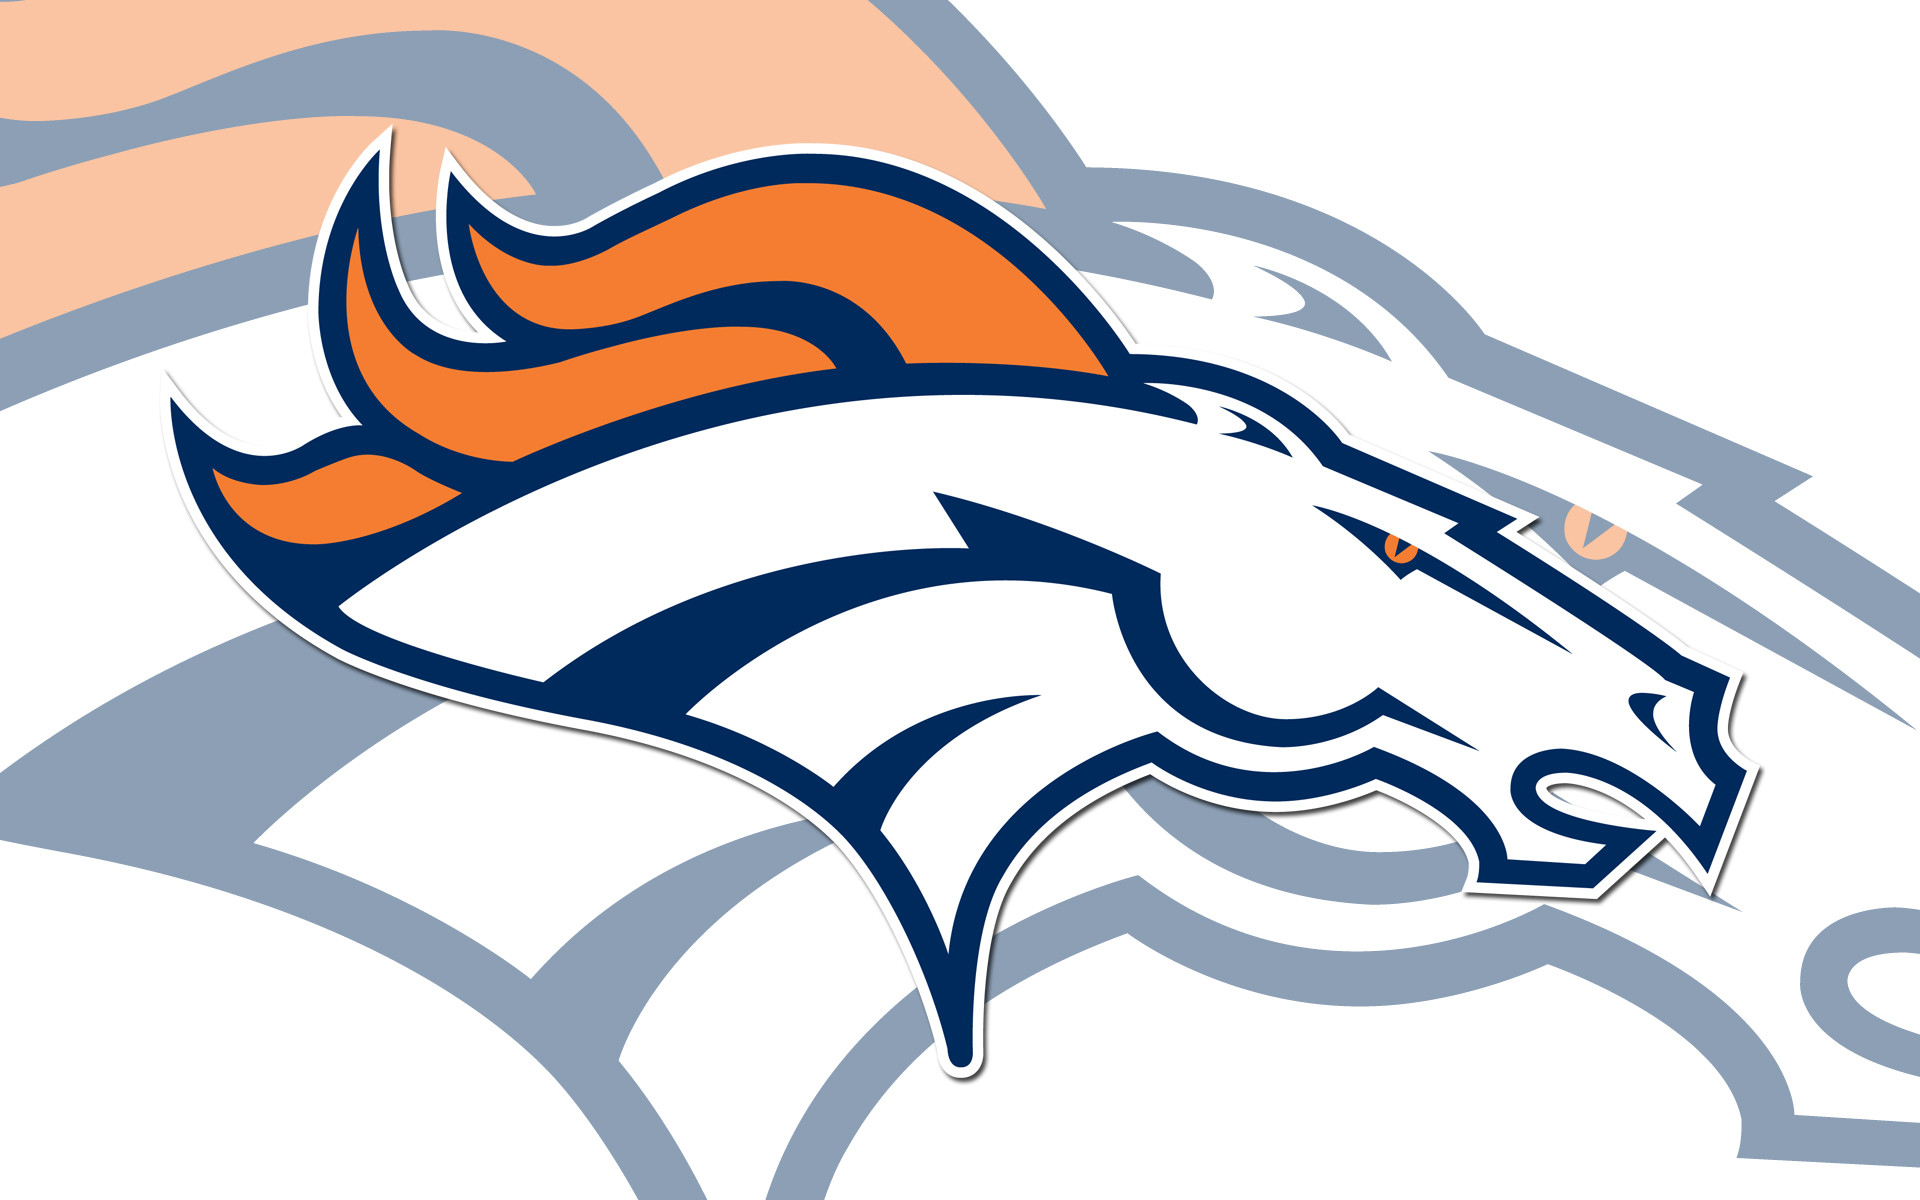 Denver Broncos Wallpaper HD Download Free | PixelsTalk.Net src